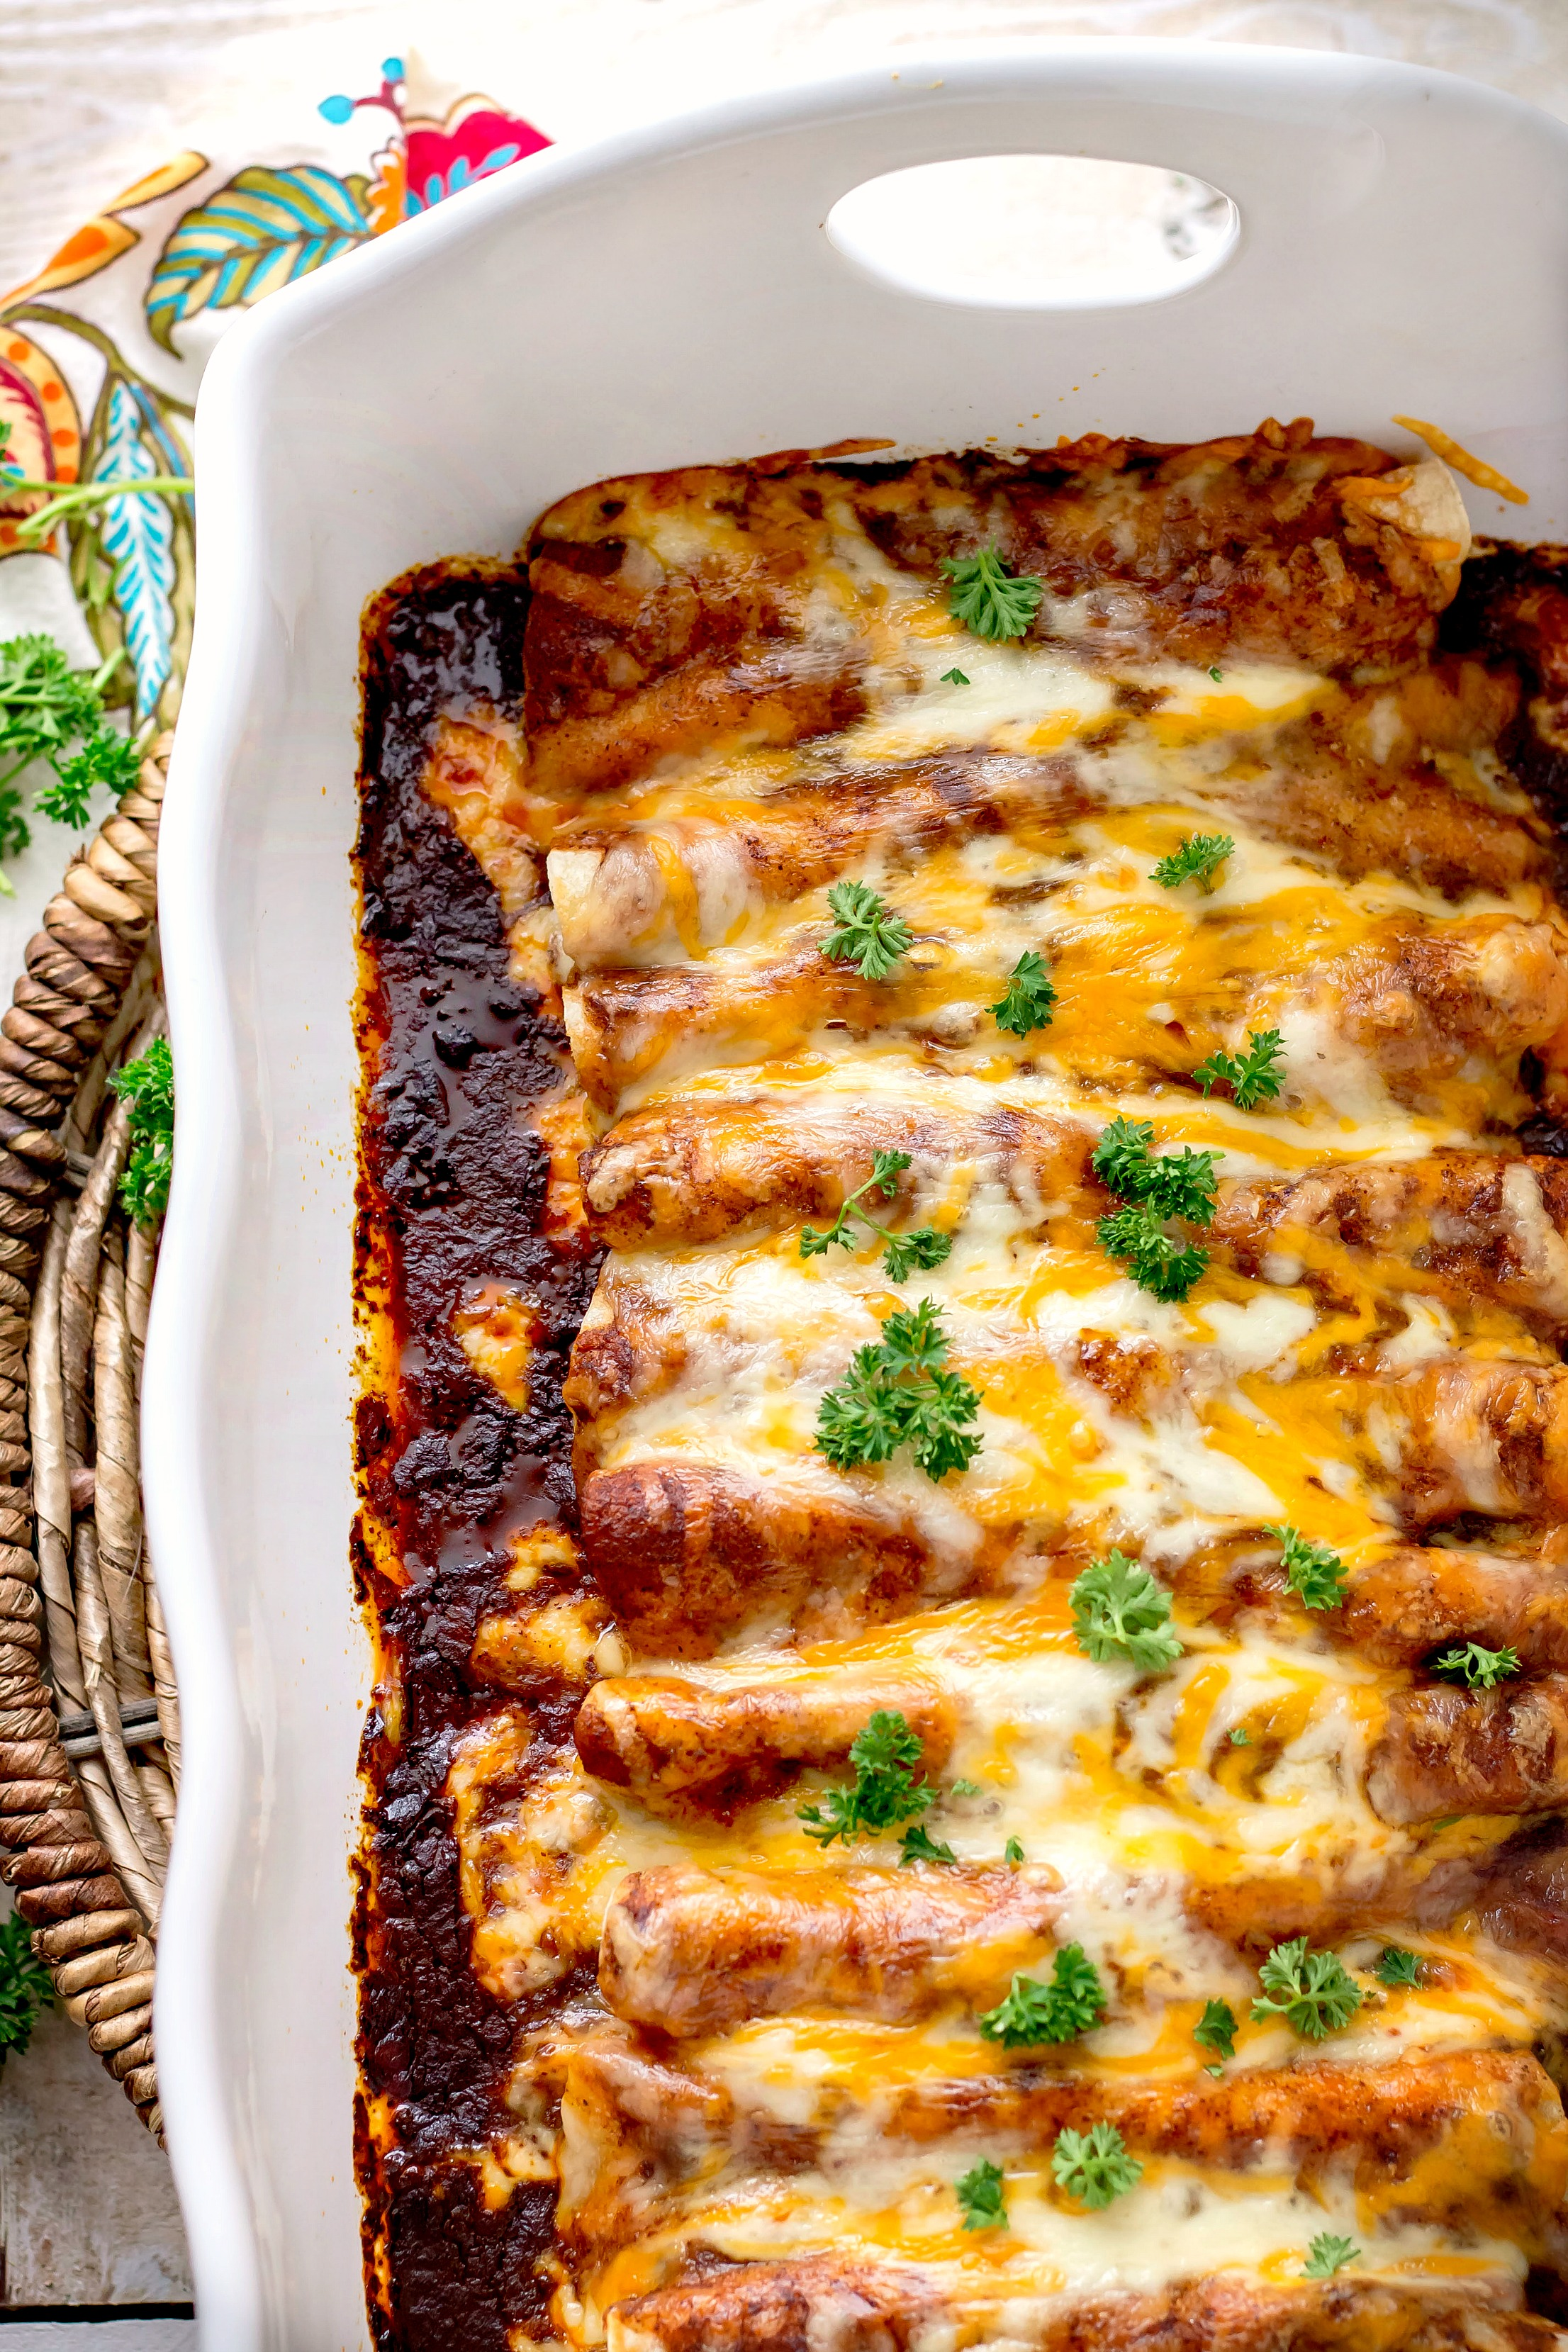 Chicken enchiladas with homemade red enchilada sauce bunnys chicken enchiladas with homemade red enchilada sauce forumfinder Choice Image